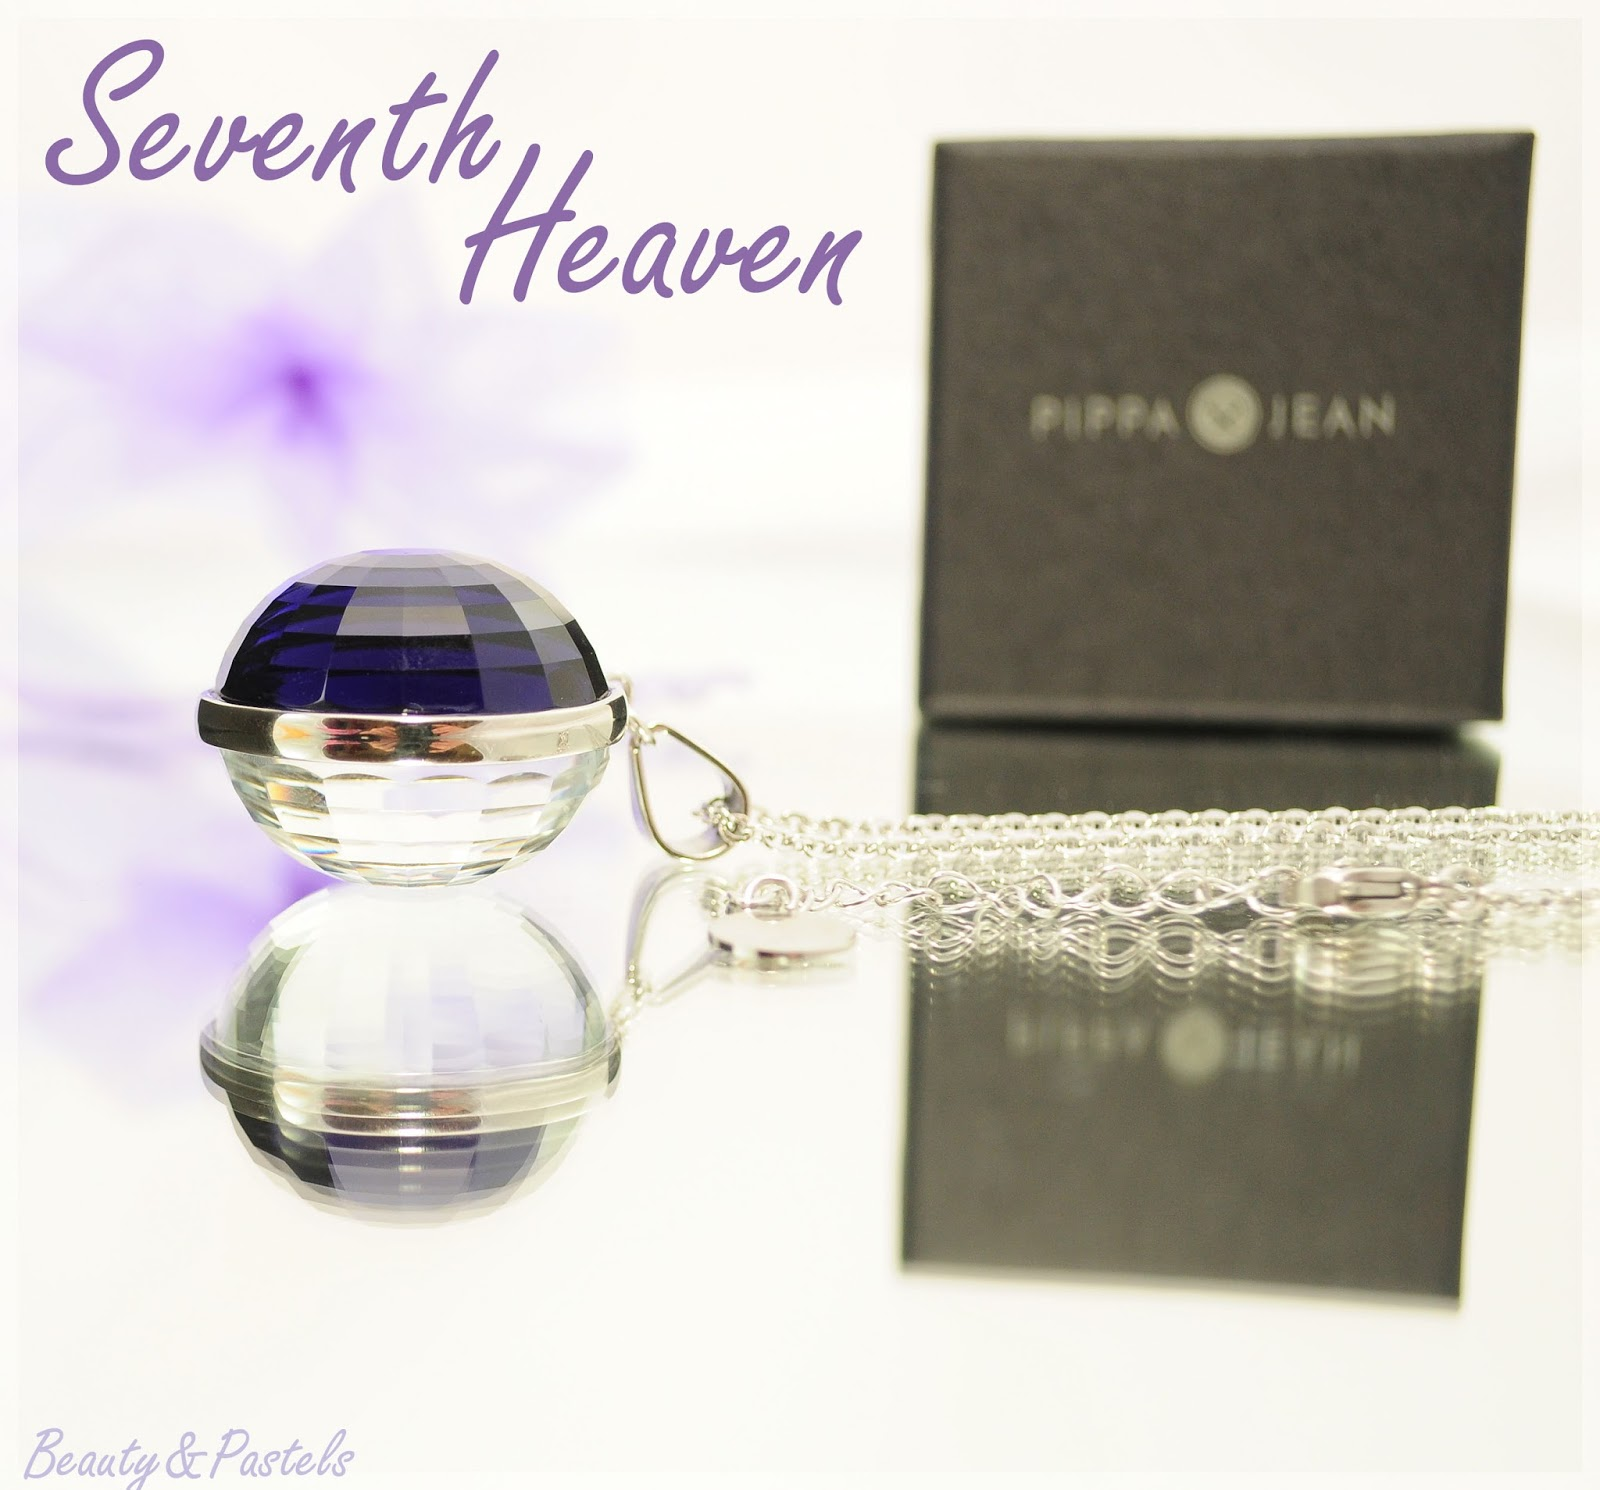 Seventh Heaven Necklace